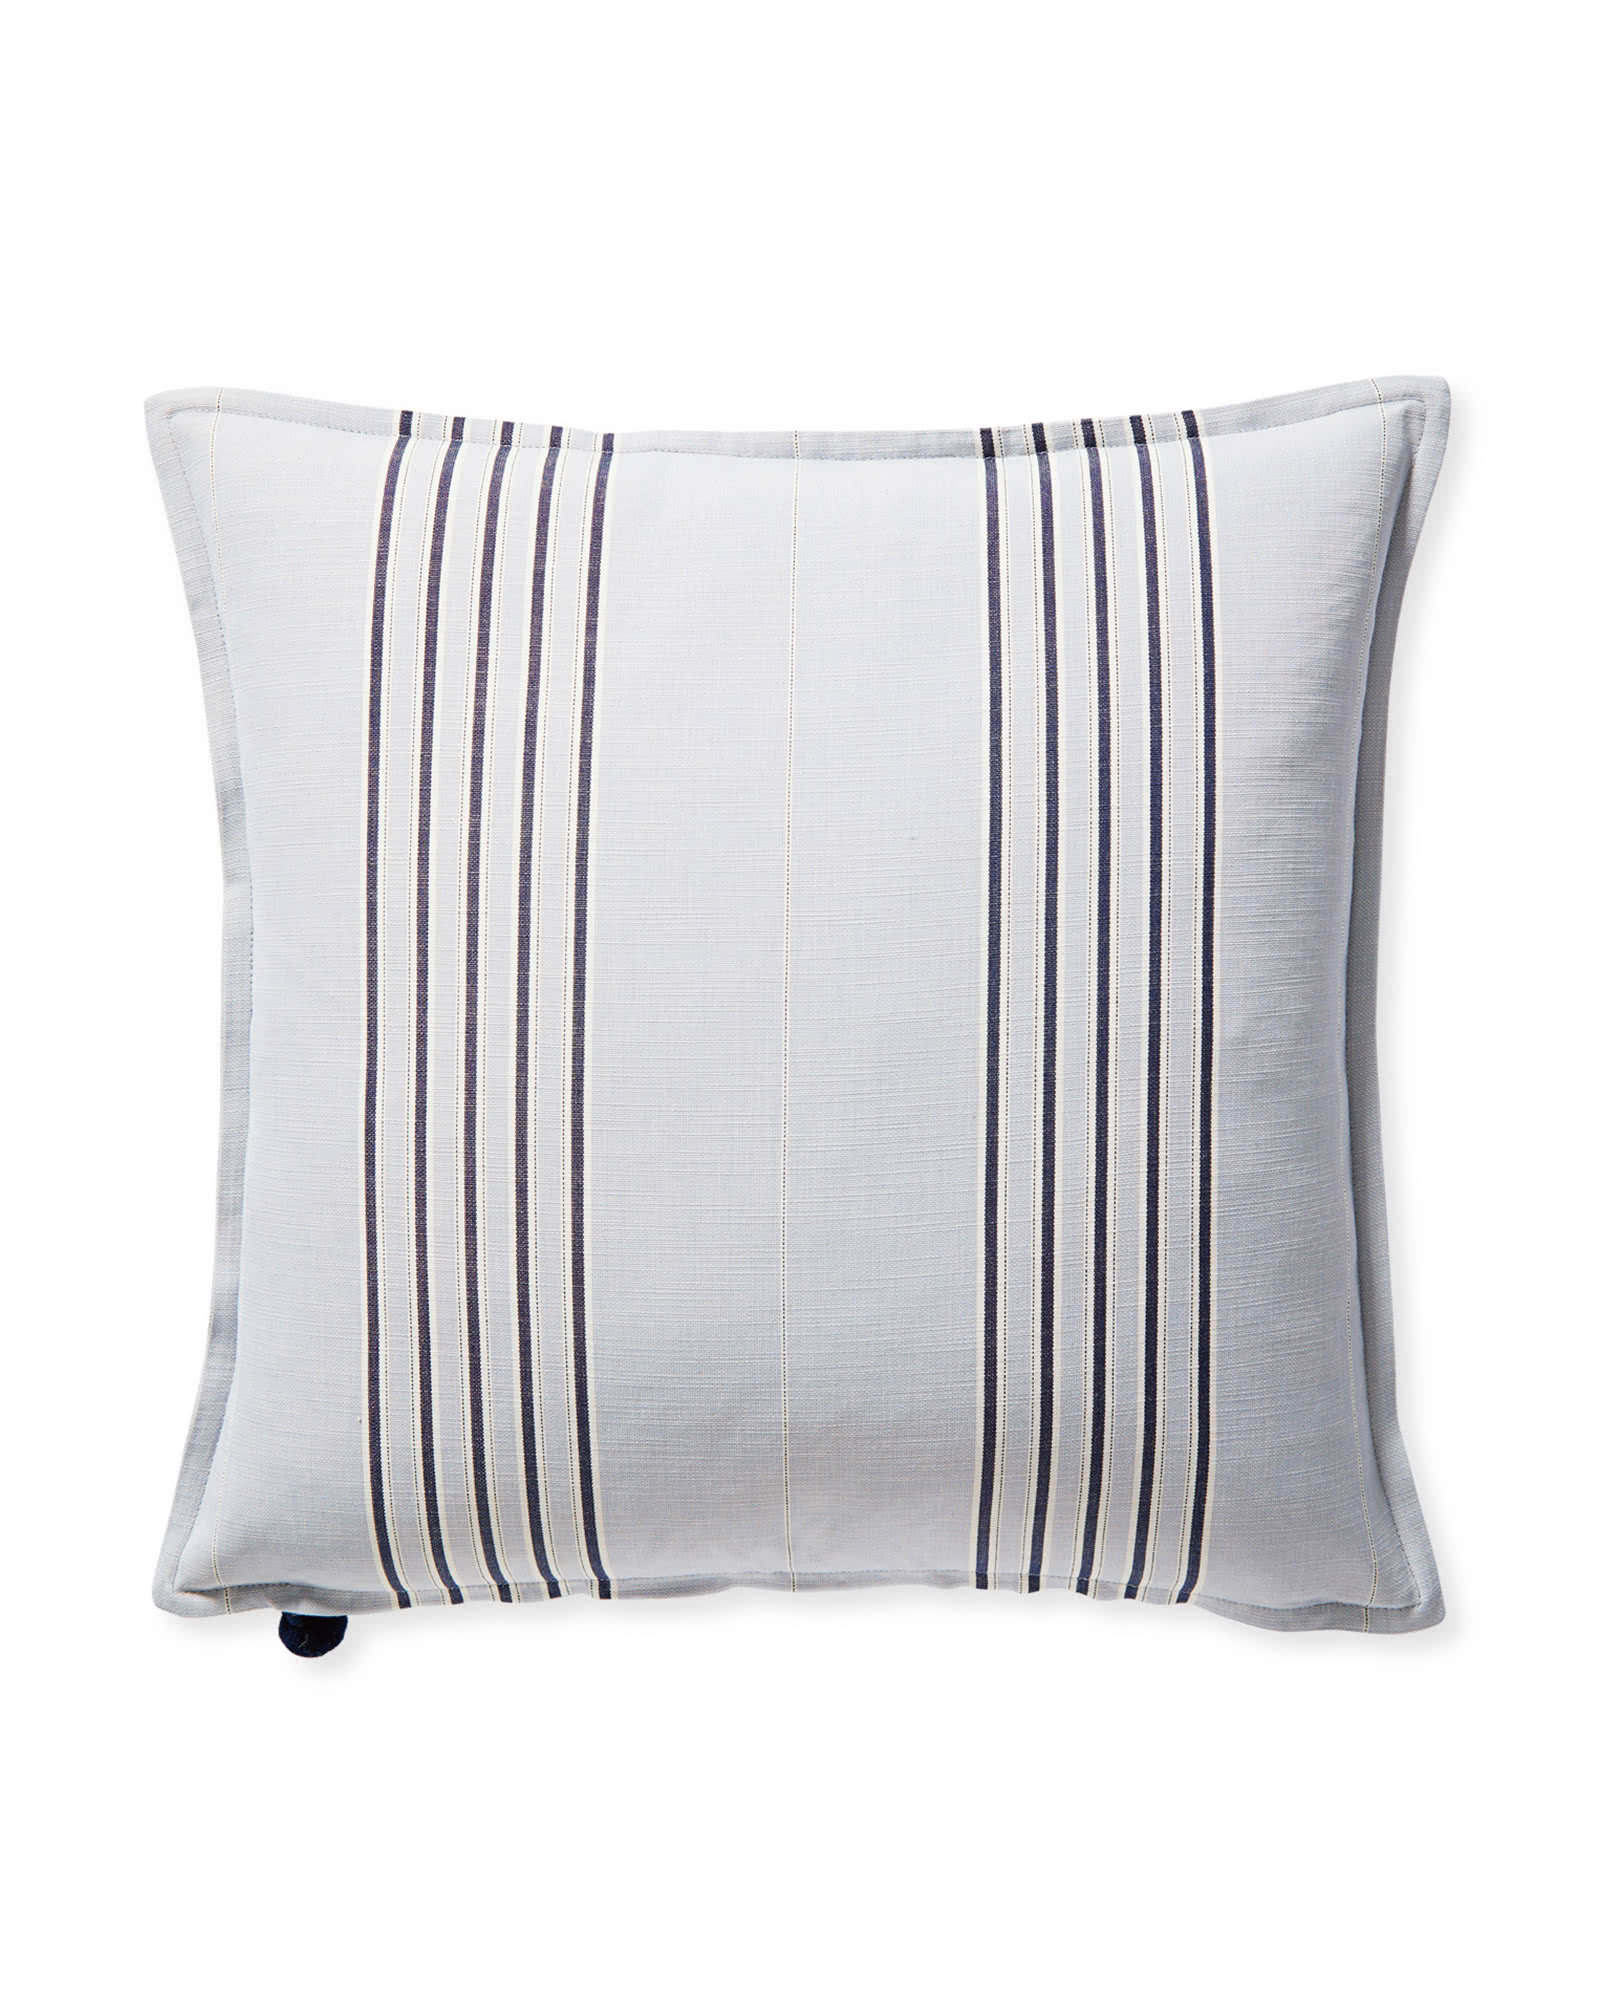 Perennials® Lake Stripe Pillow Cover, Sky Blue